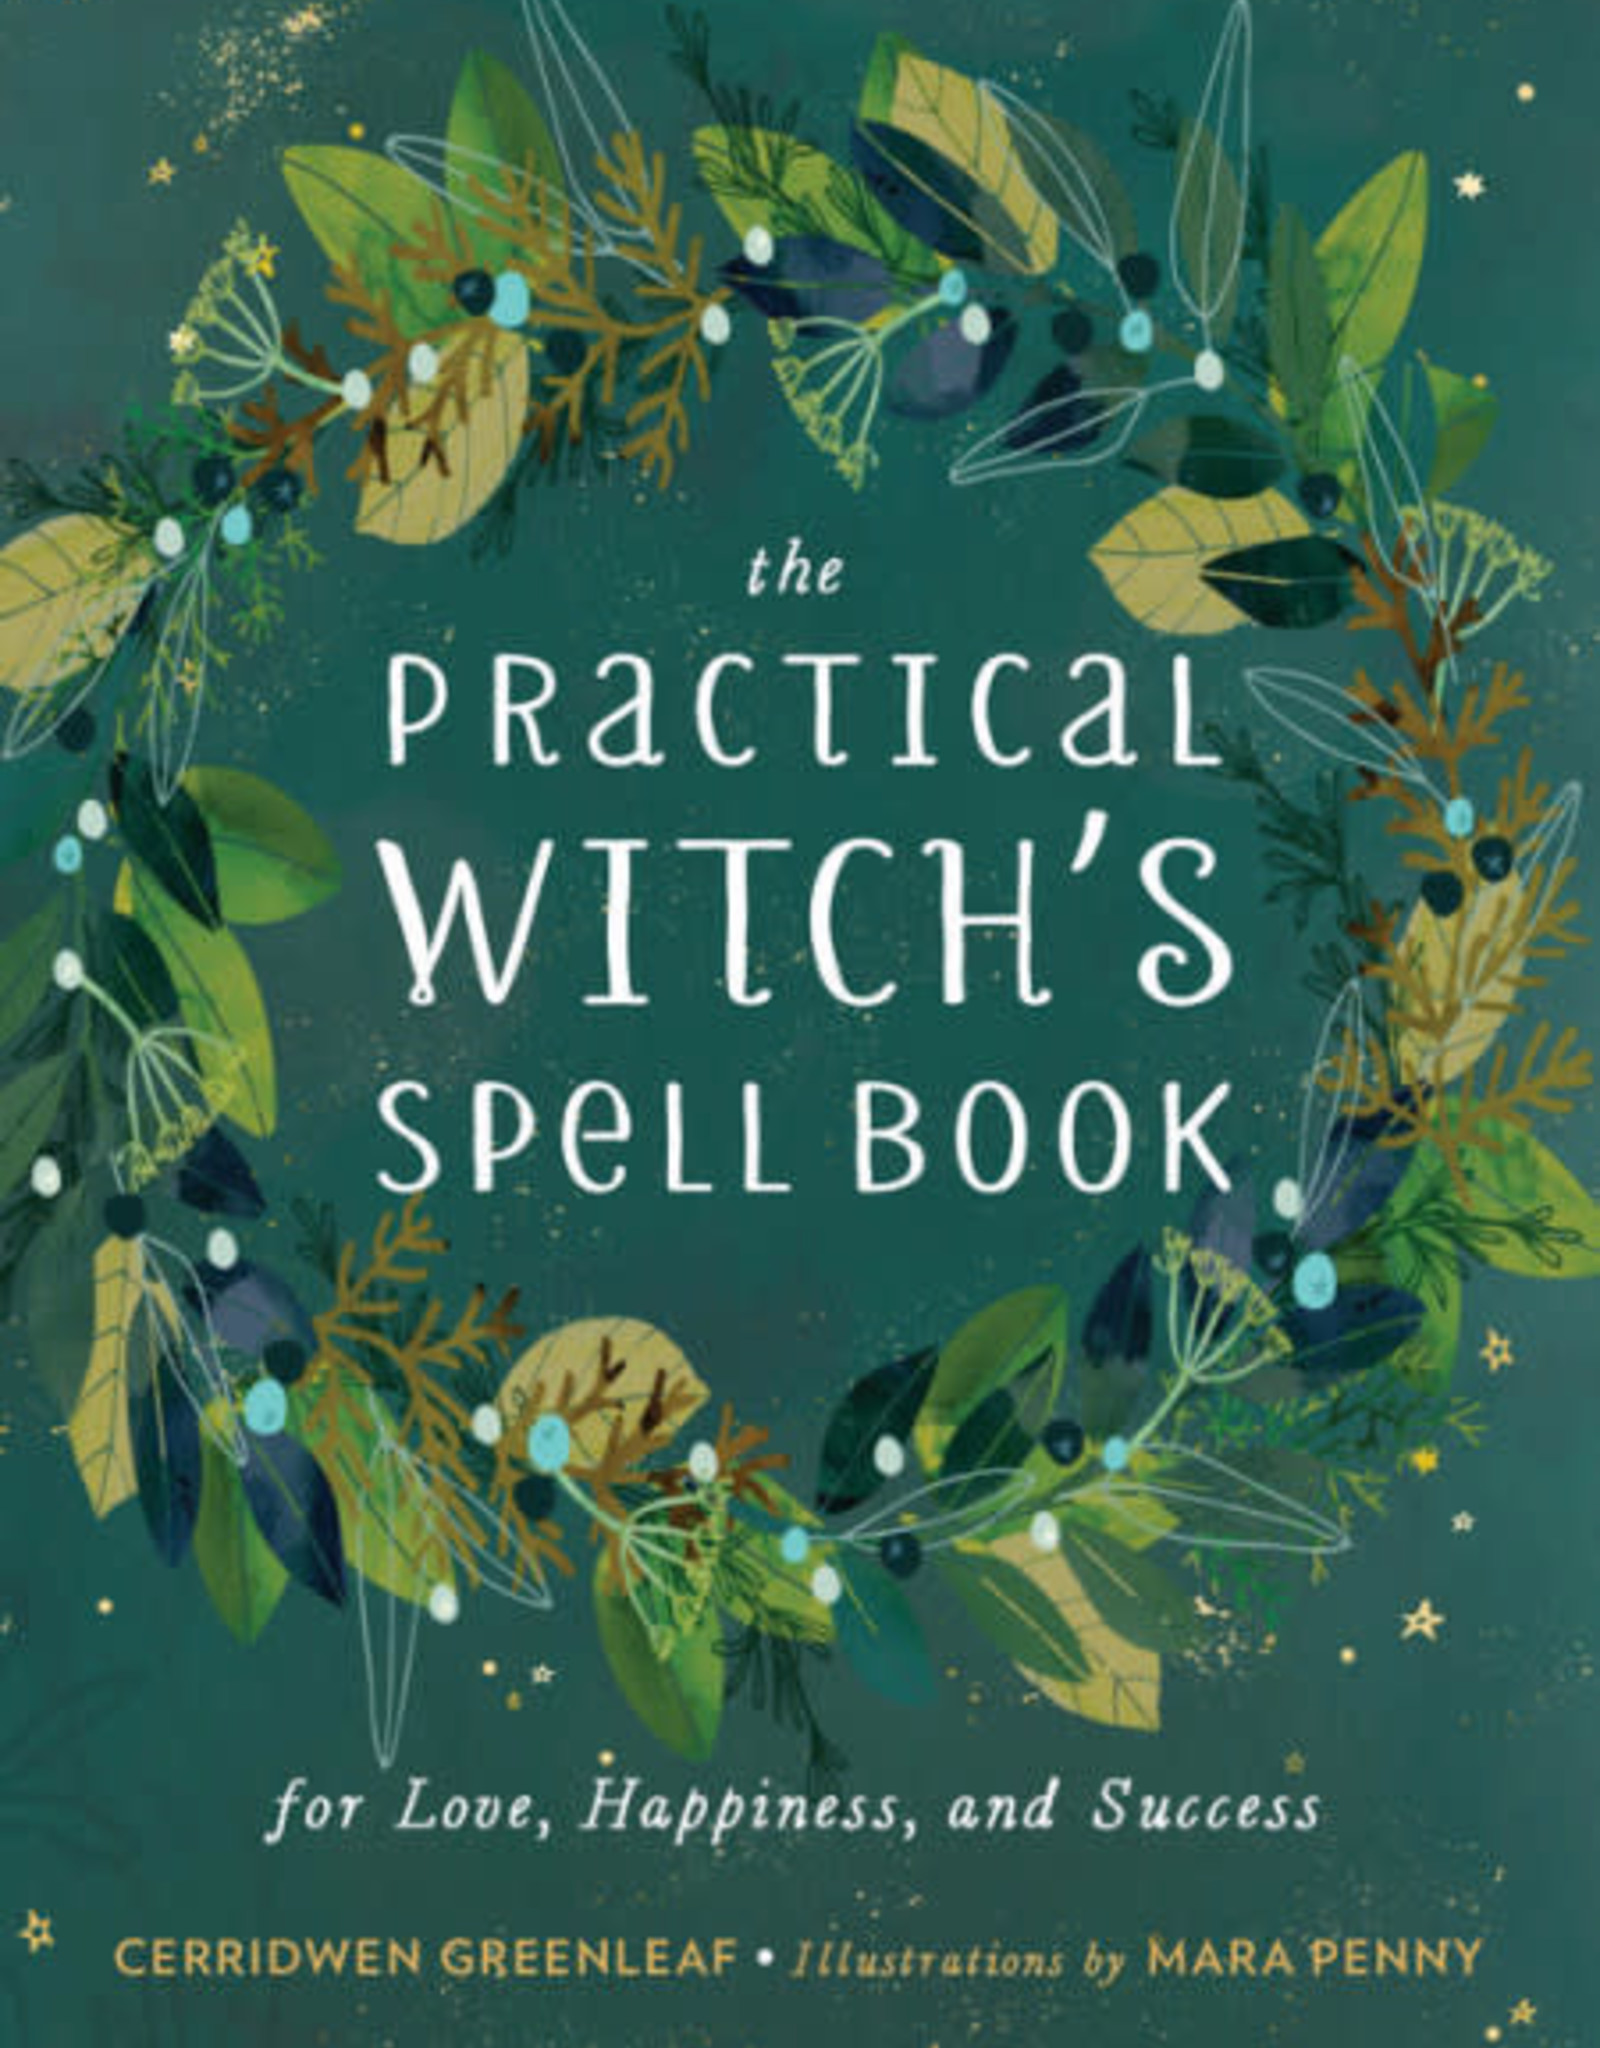 Hachette Book Group The Practical Witch's Spell Book